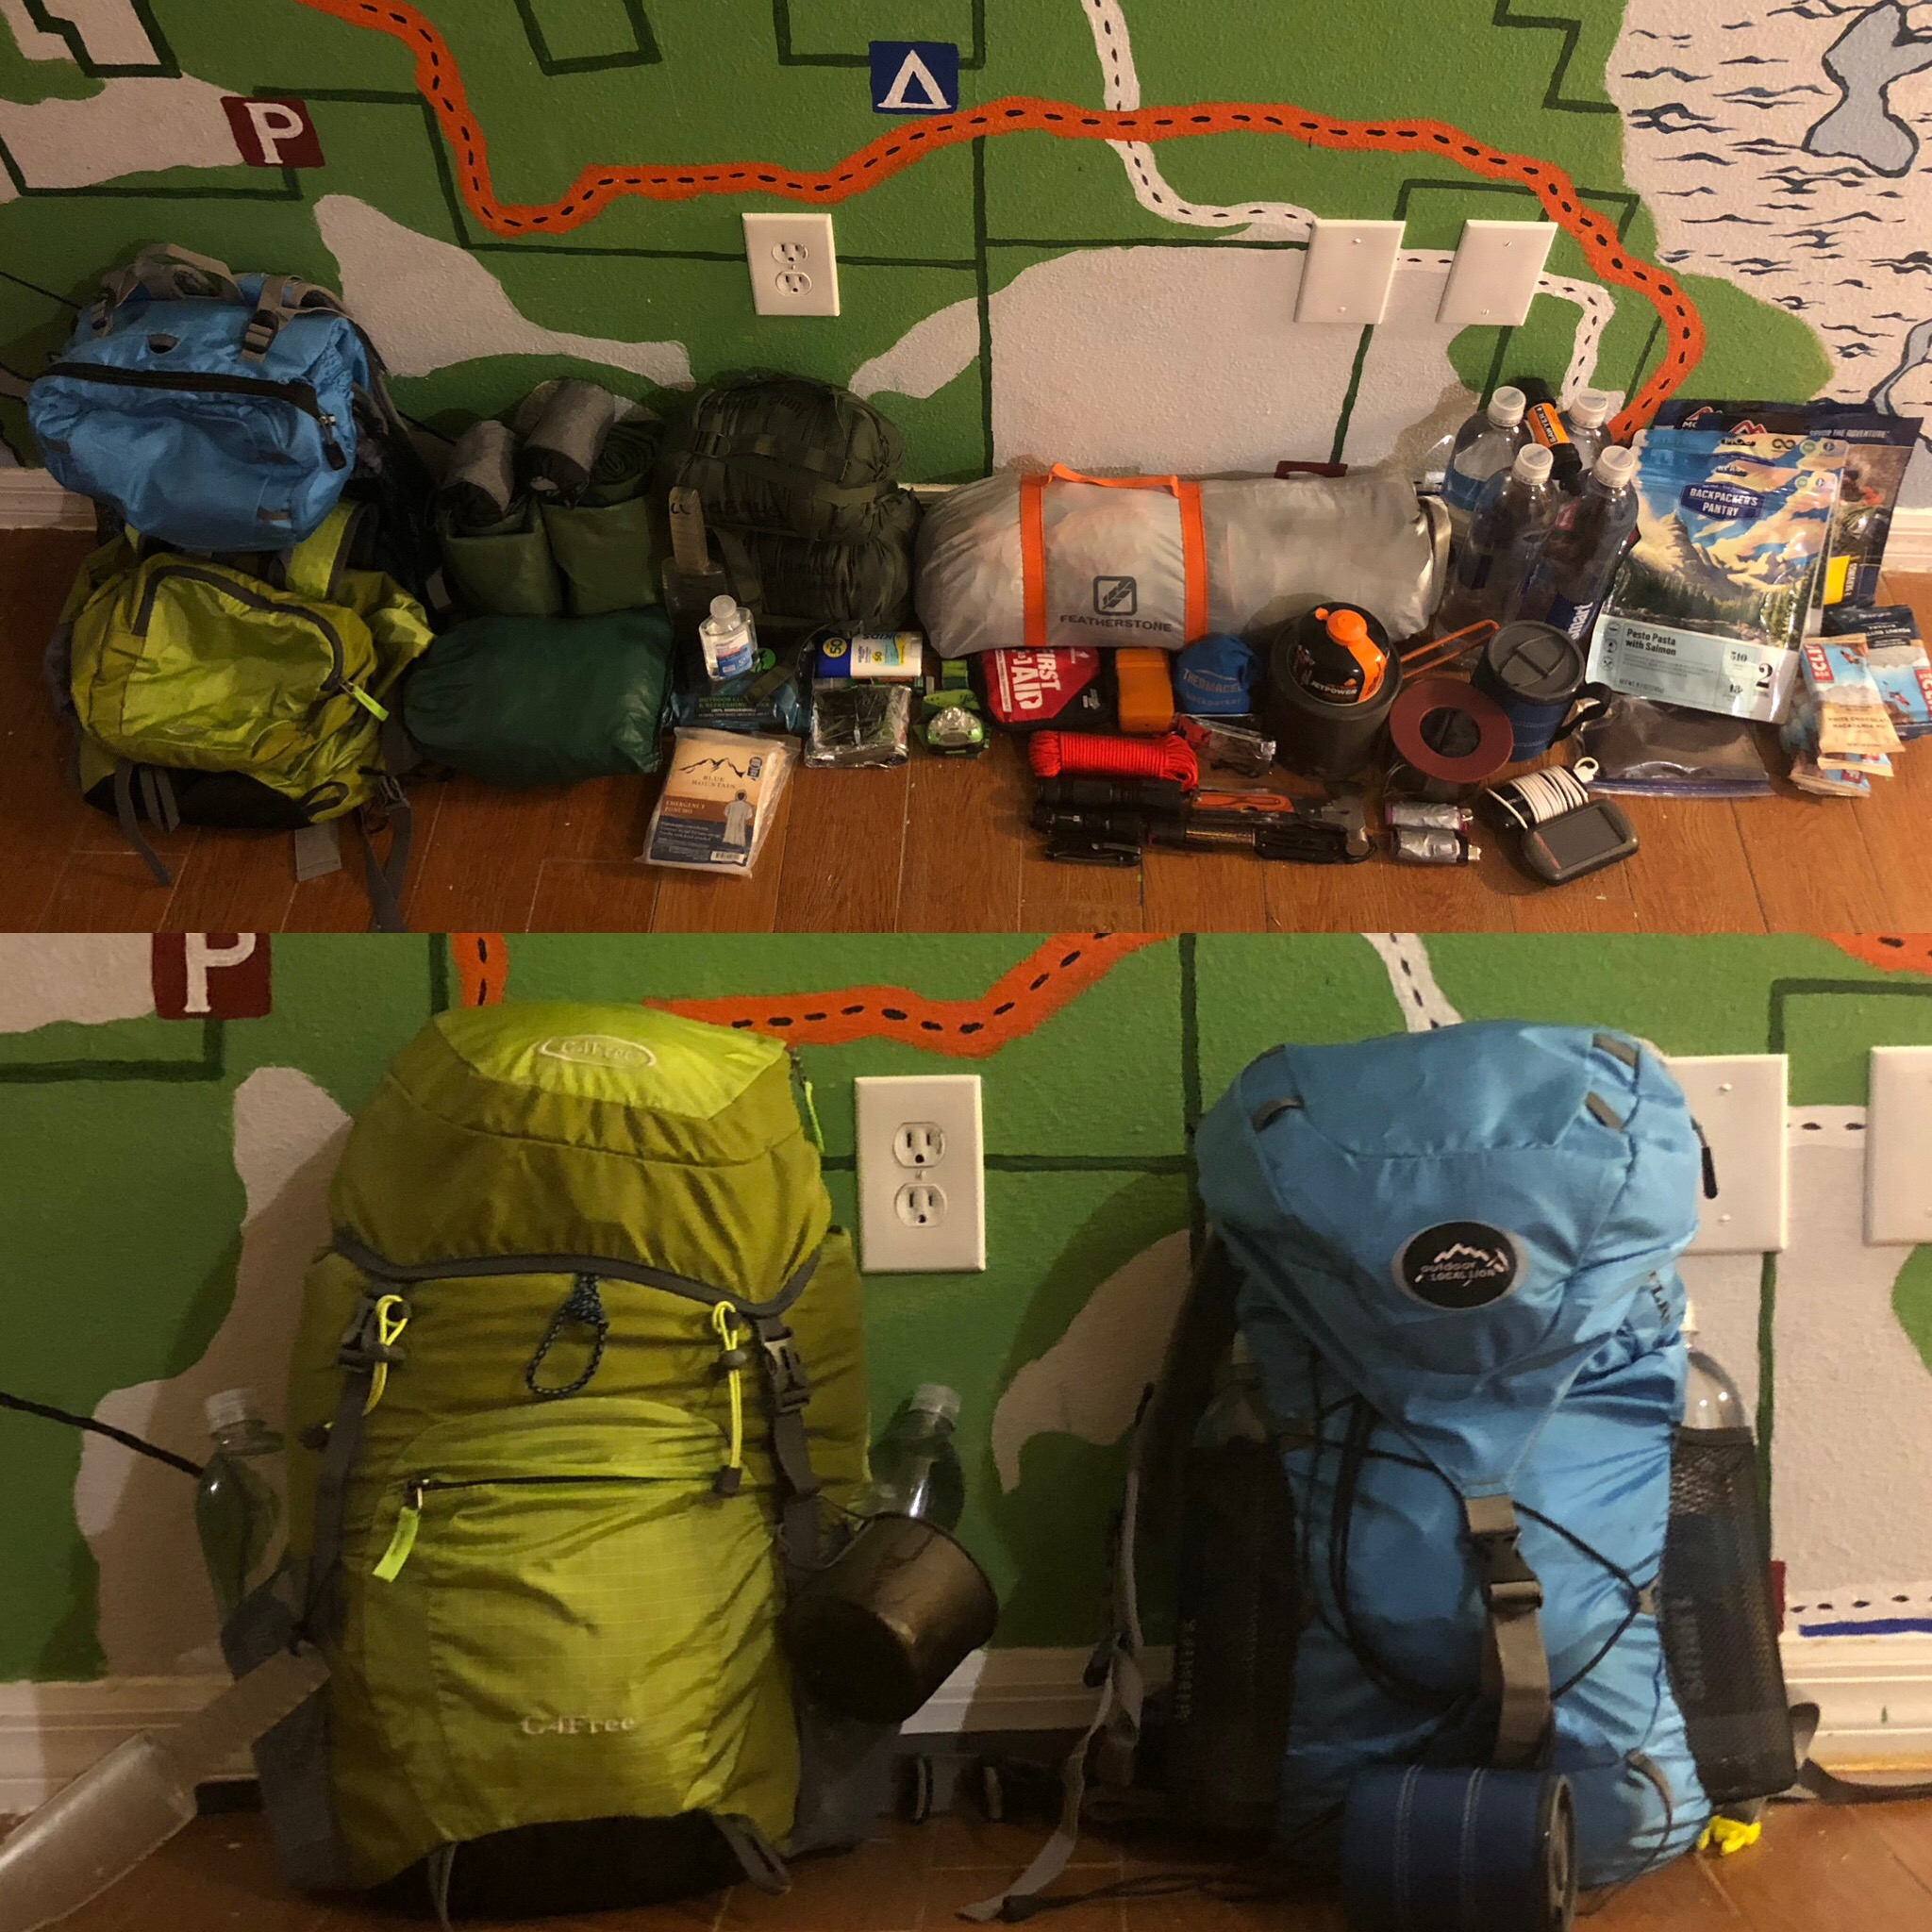 Dating while backpacking